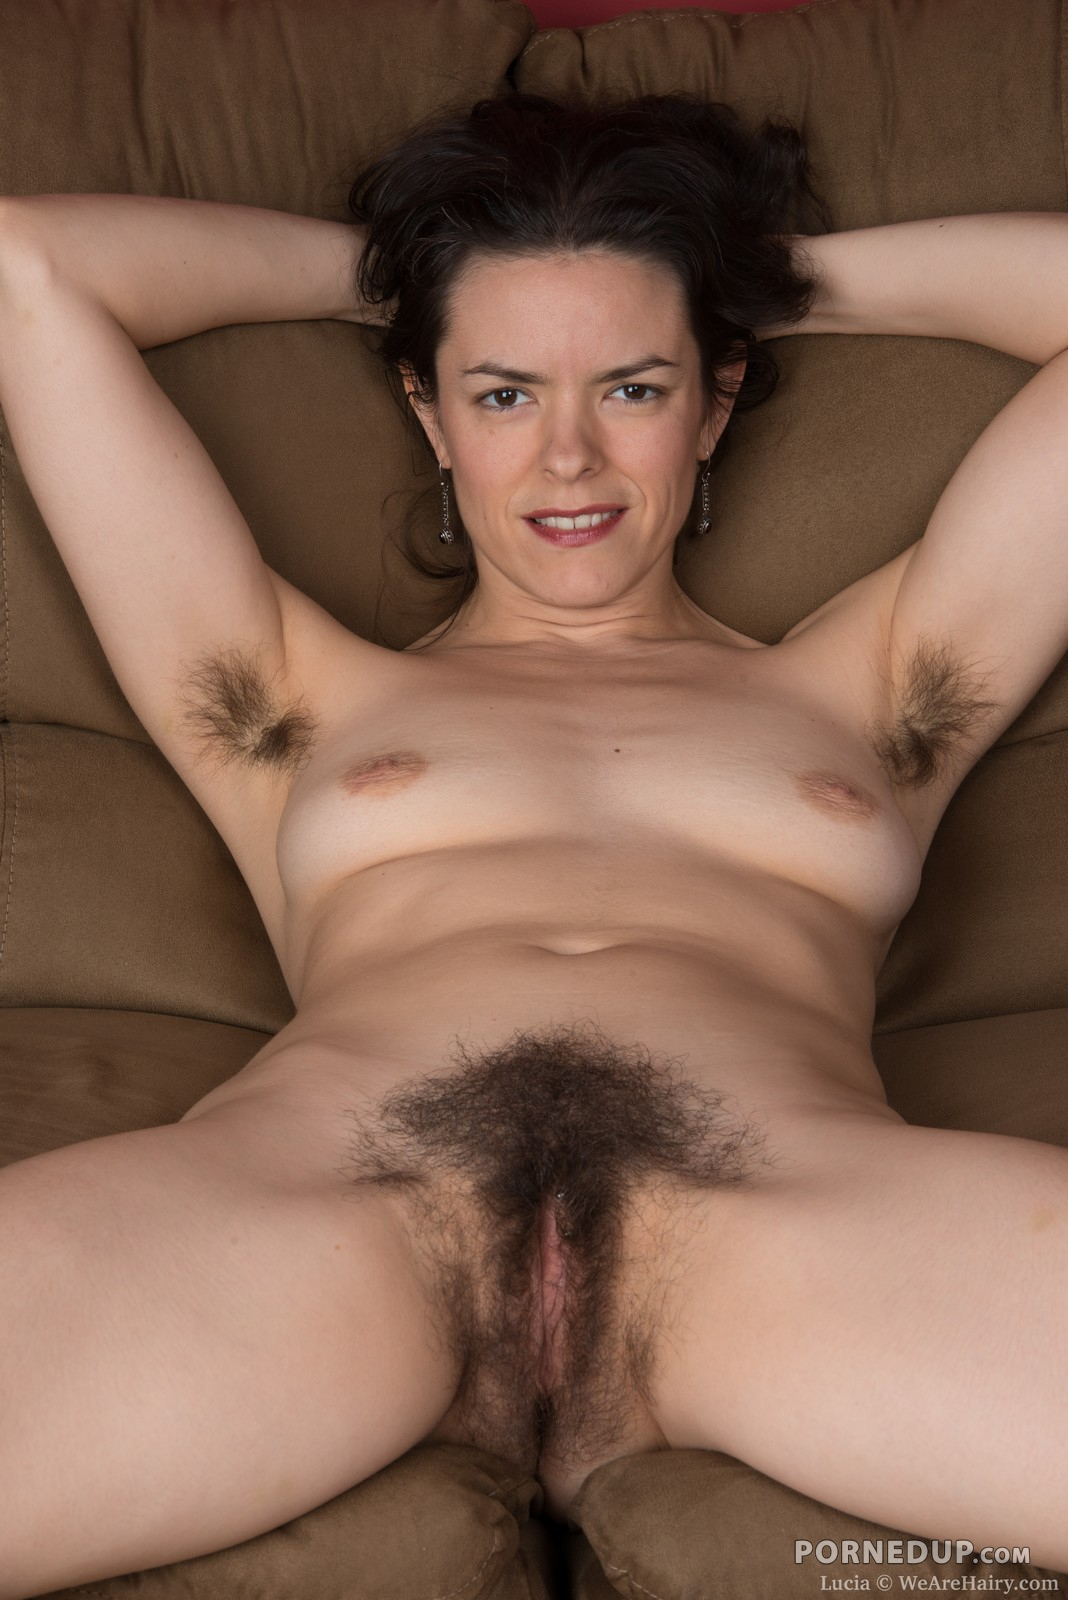 Unfortunately! And Hairy milf free pic would